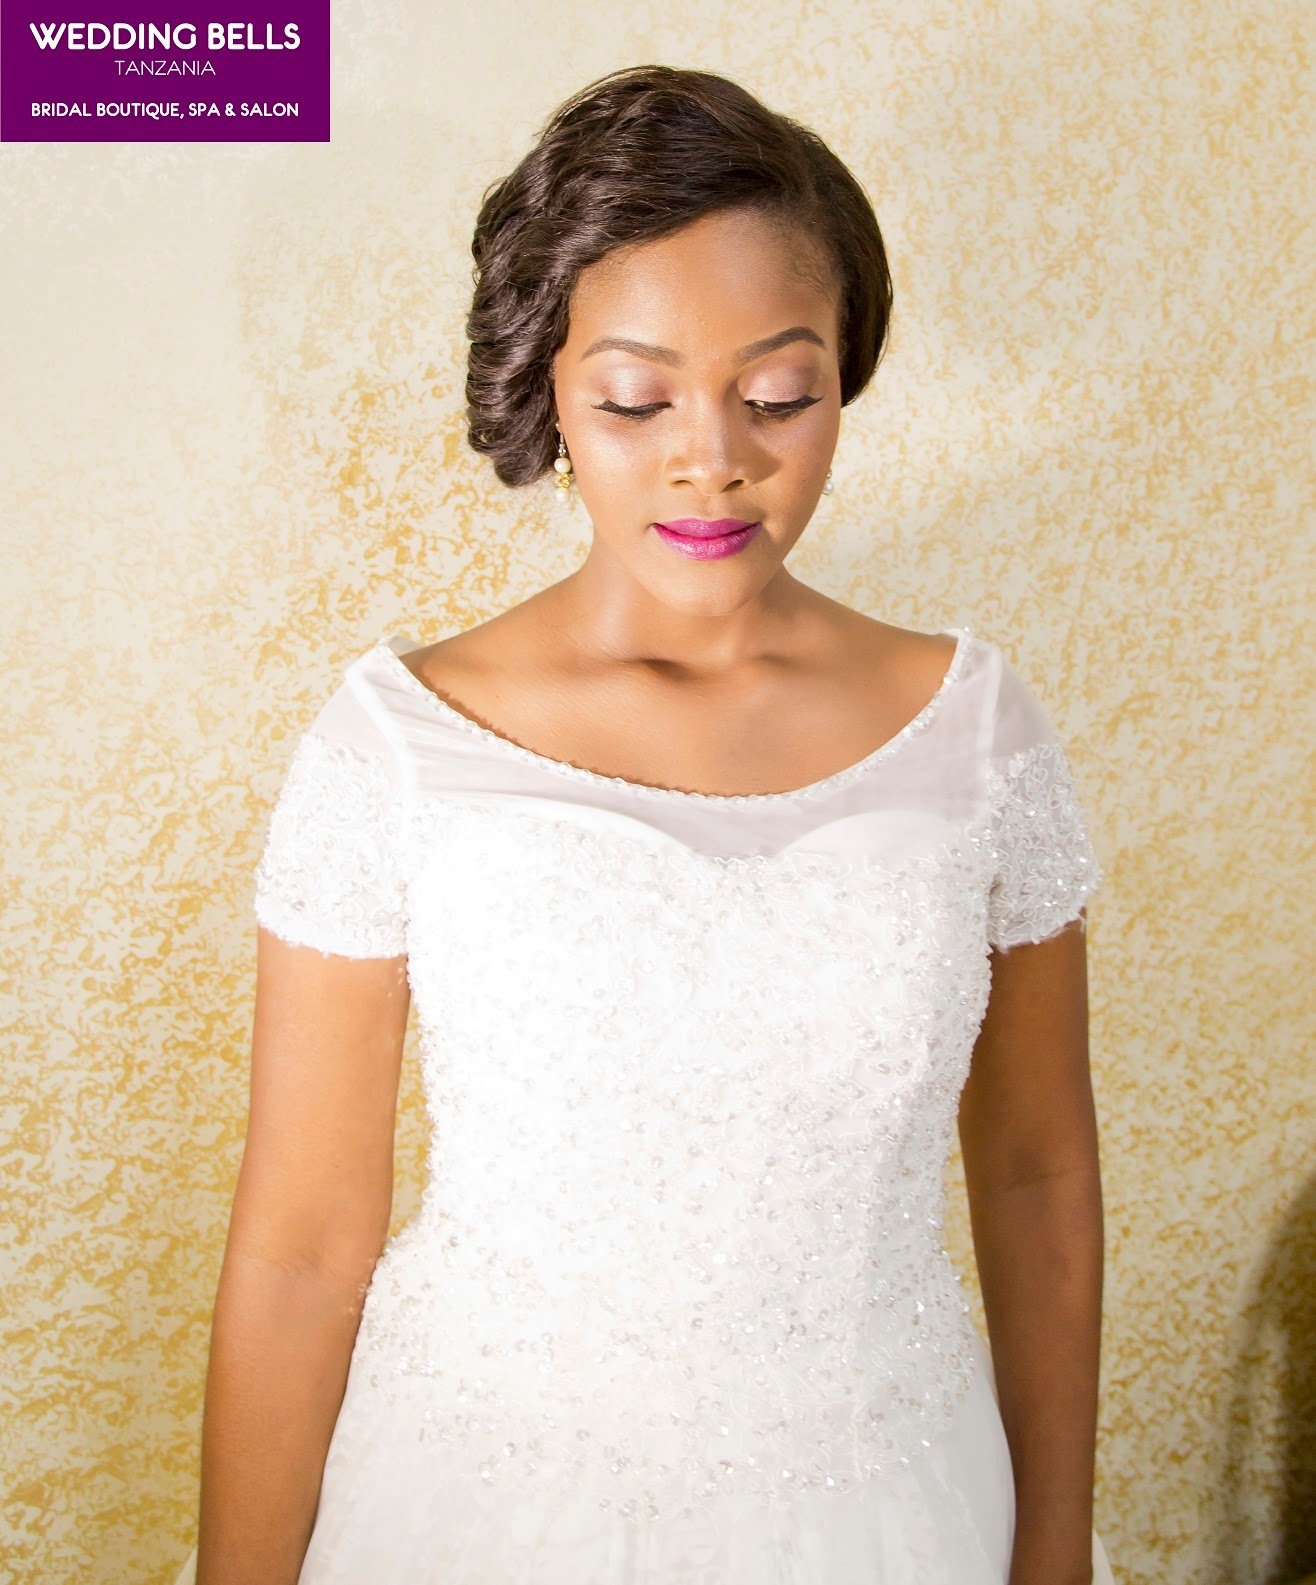 Winnie\'s Third and Final Look @ Wedding Bells Spa ~ Wedding Bells